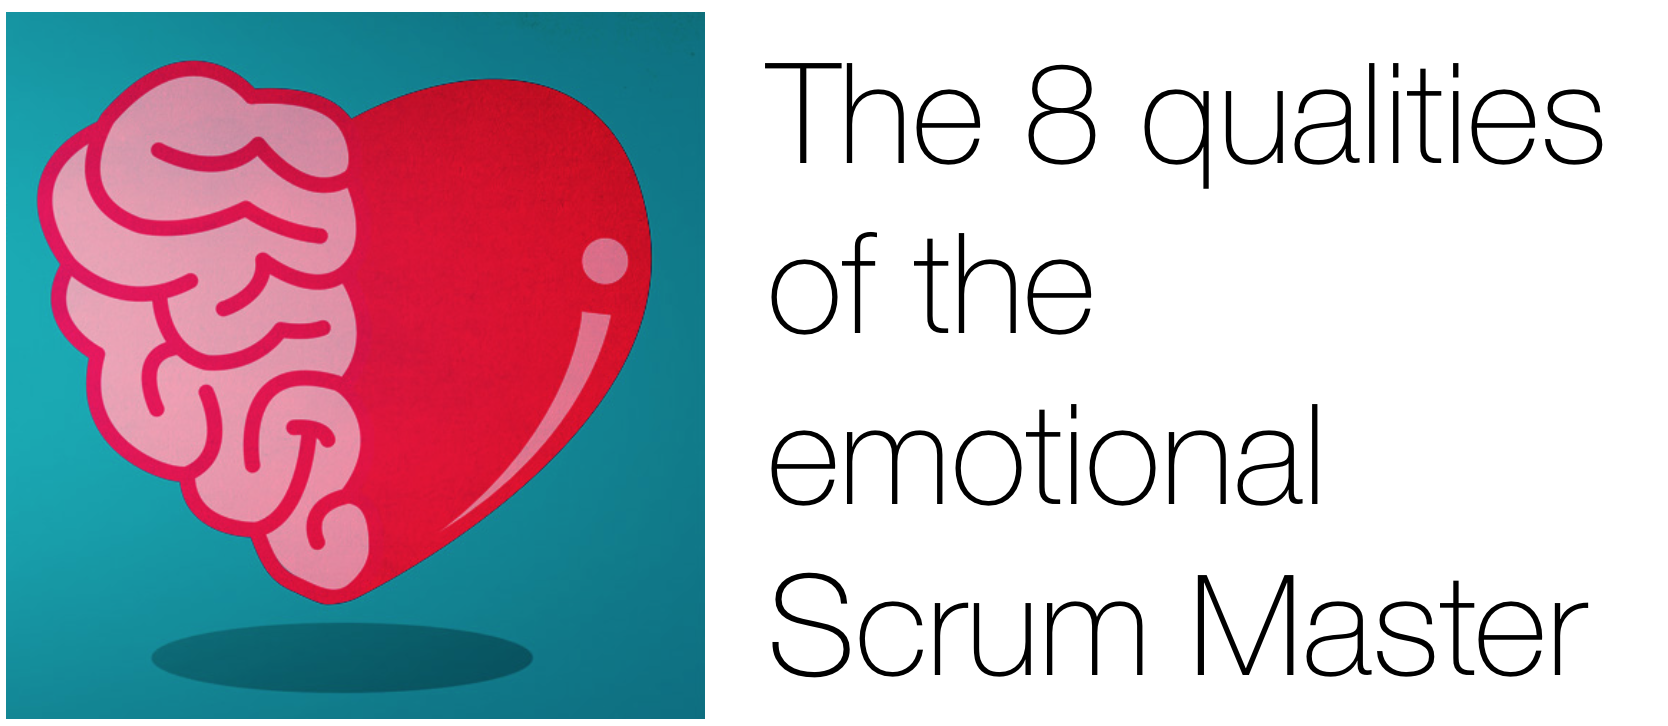 the 8 quailities of the emotional scrum master